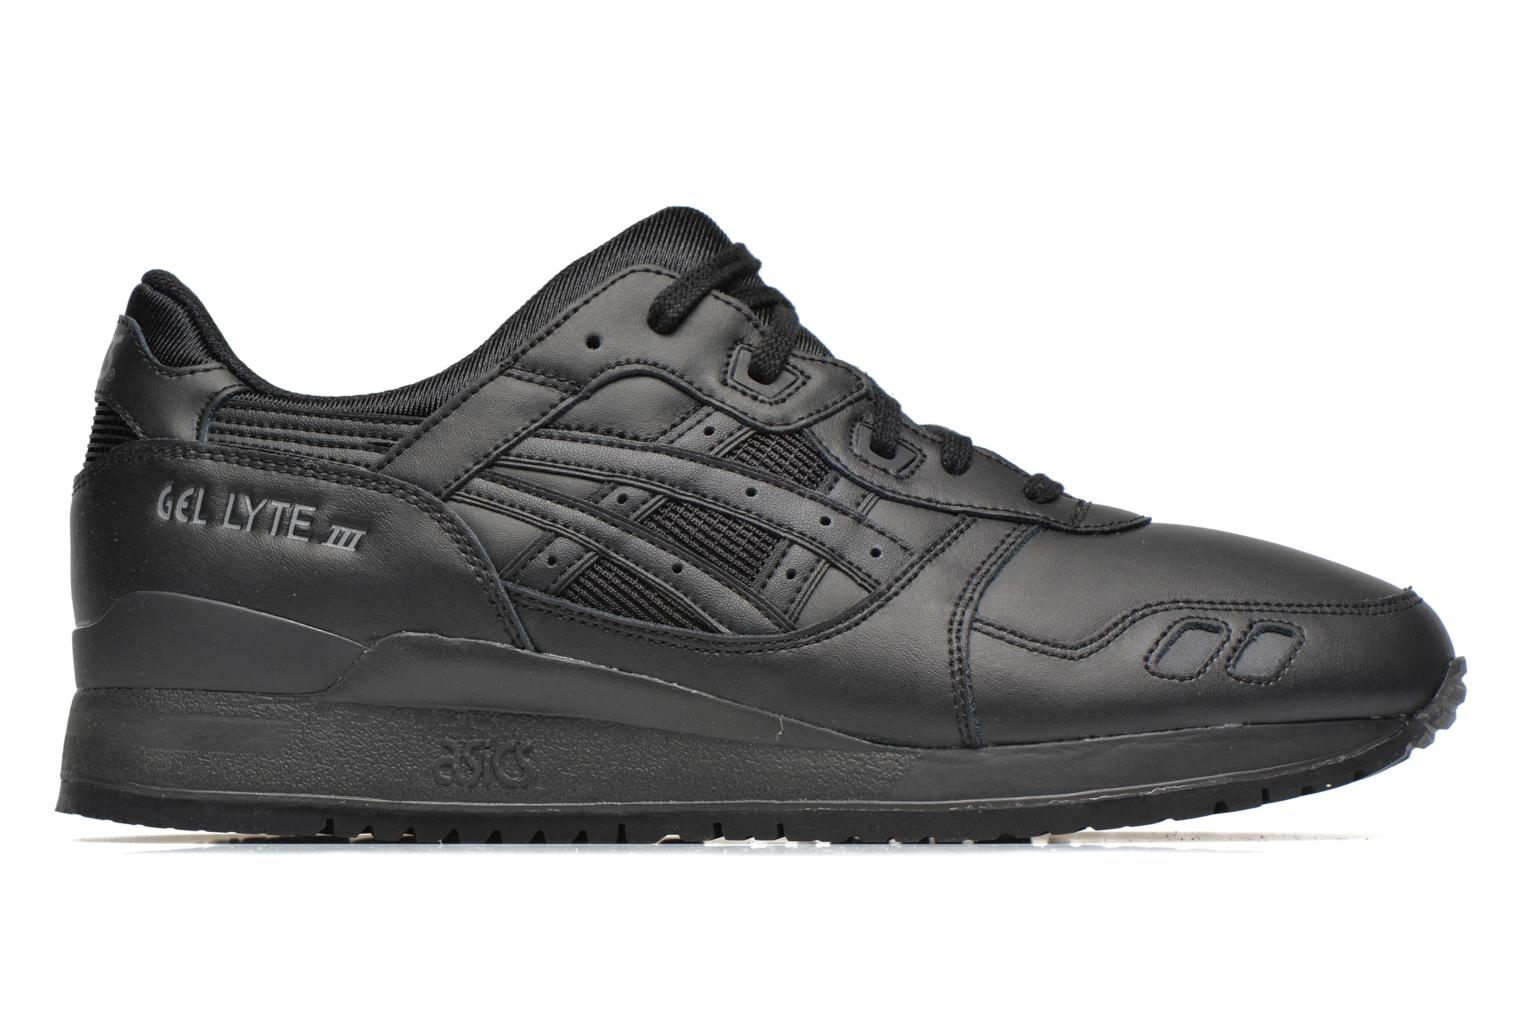 Gel-lyte III Black/black 2